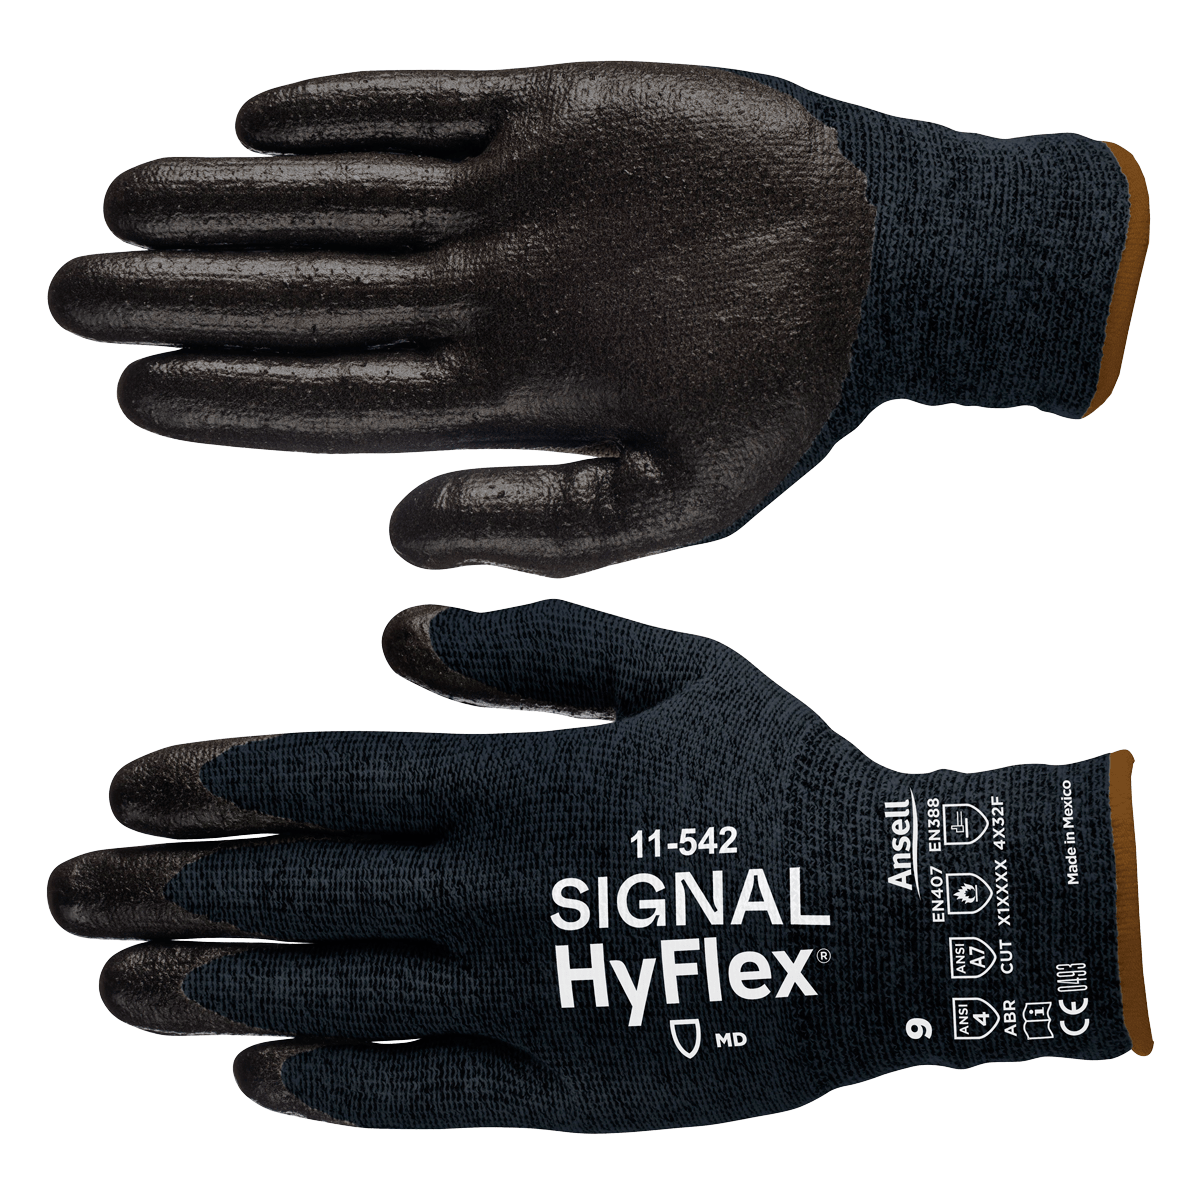 Signal custom gloves